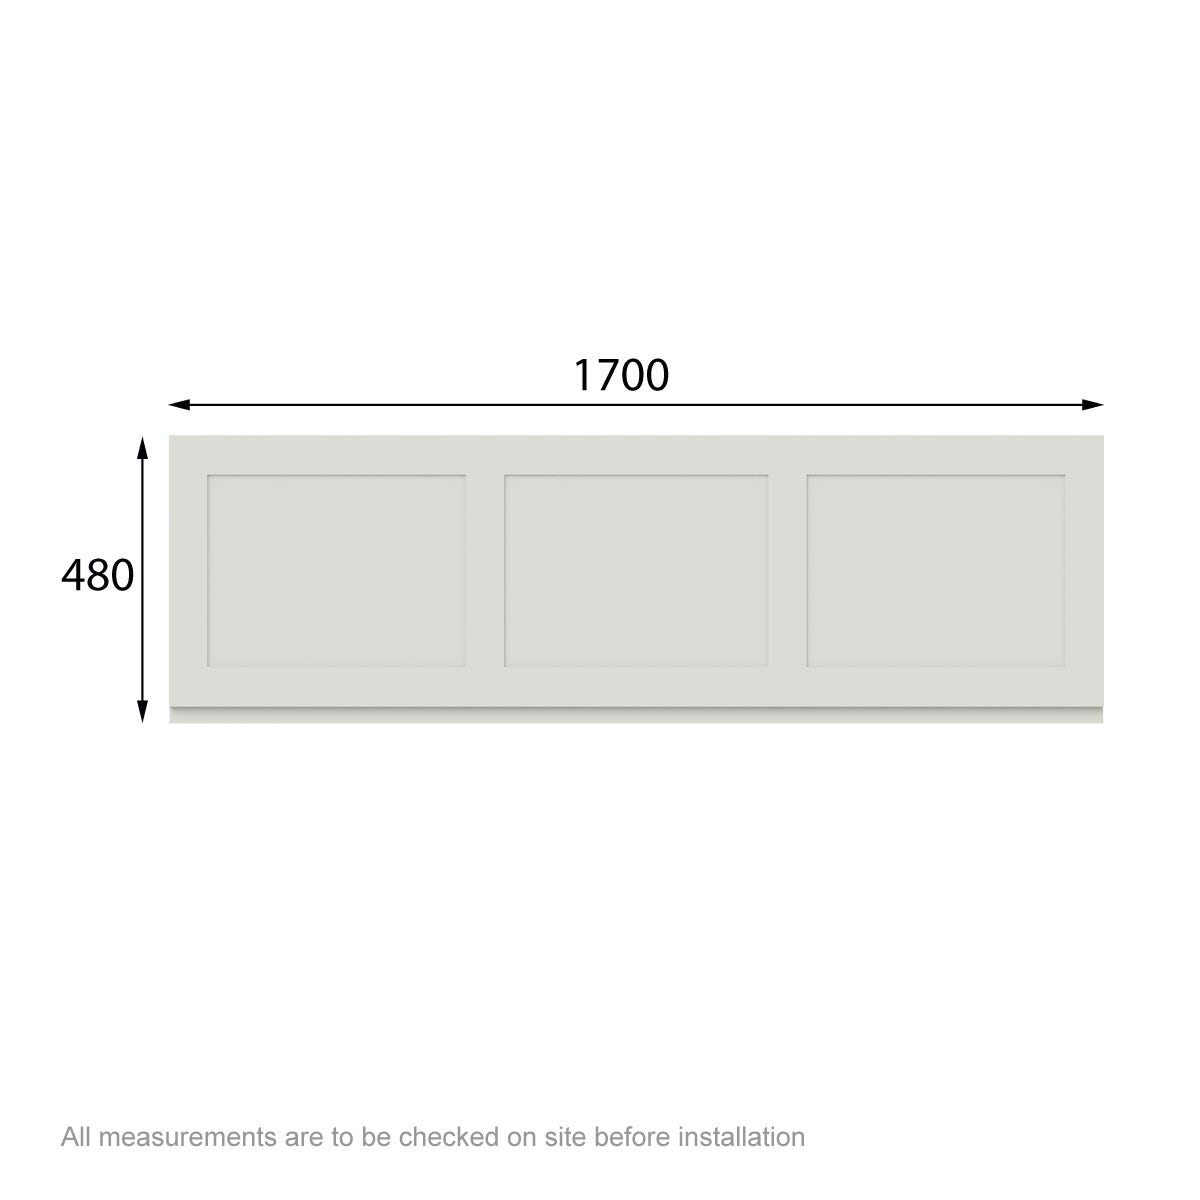 Dimensions for The Bath Co. Camberley ivory bath front panel 1700mm